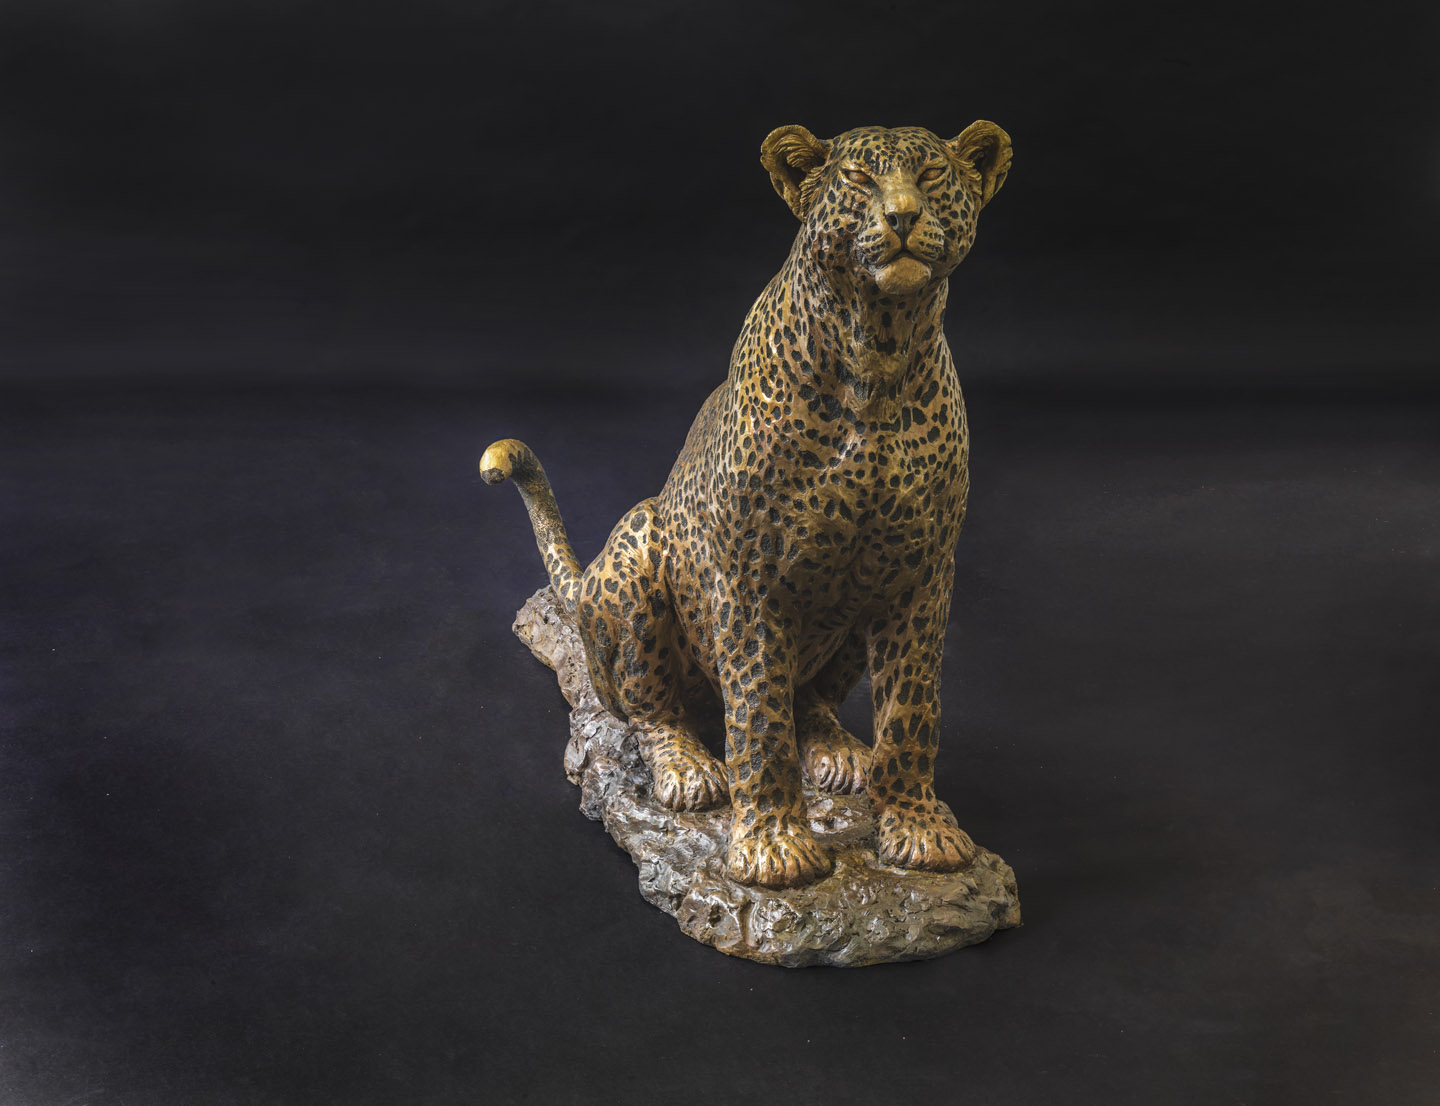 Aberdares Leopardess Sitting Life Sized